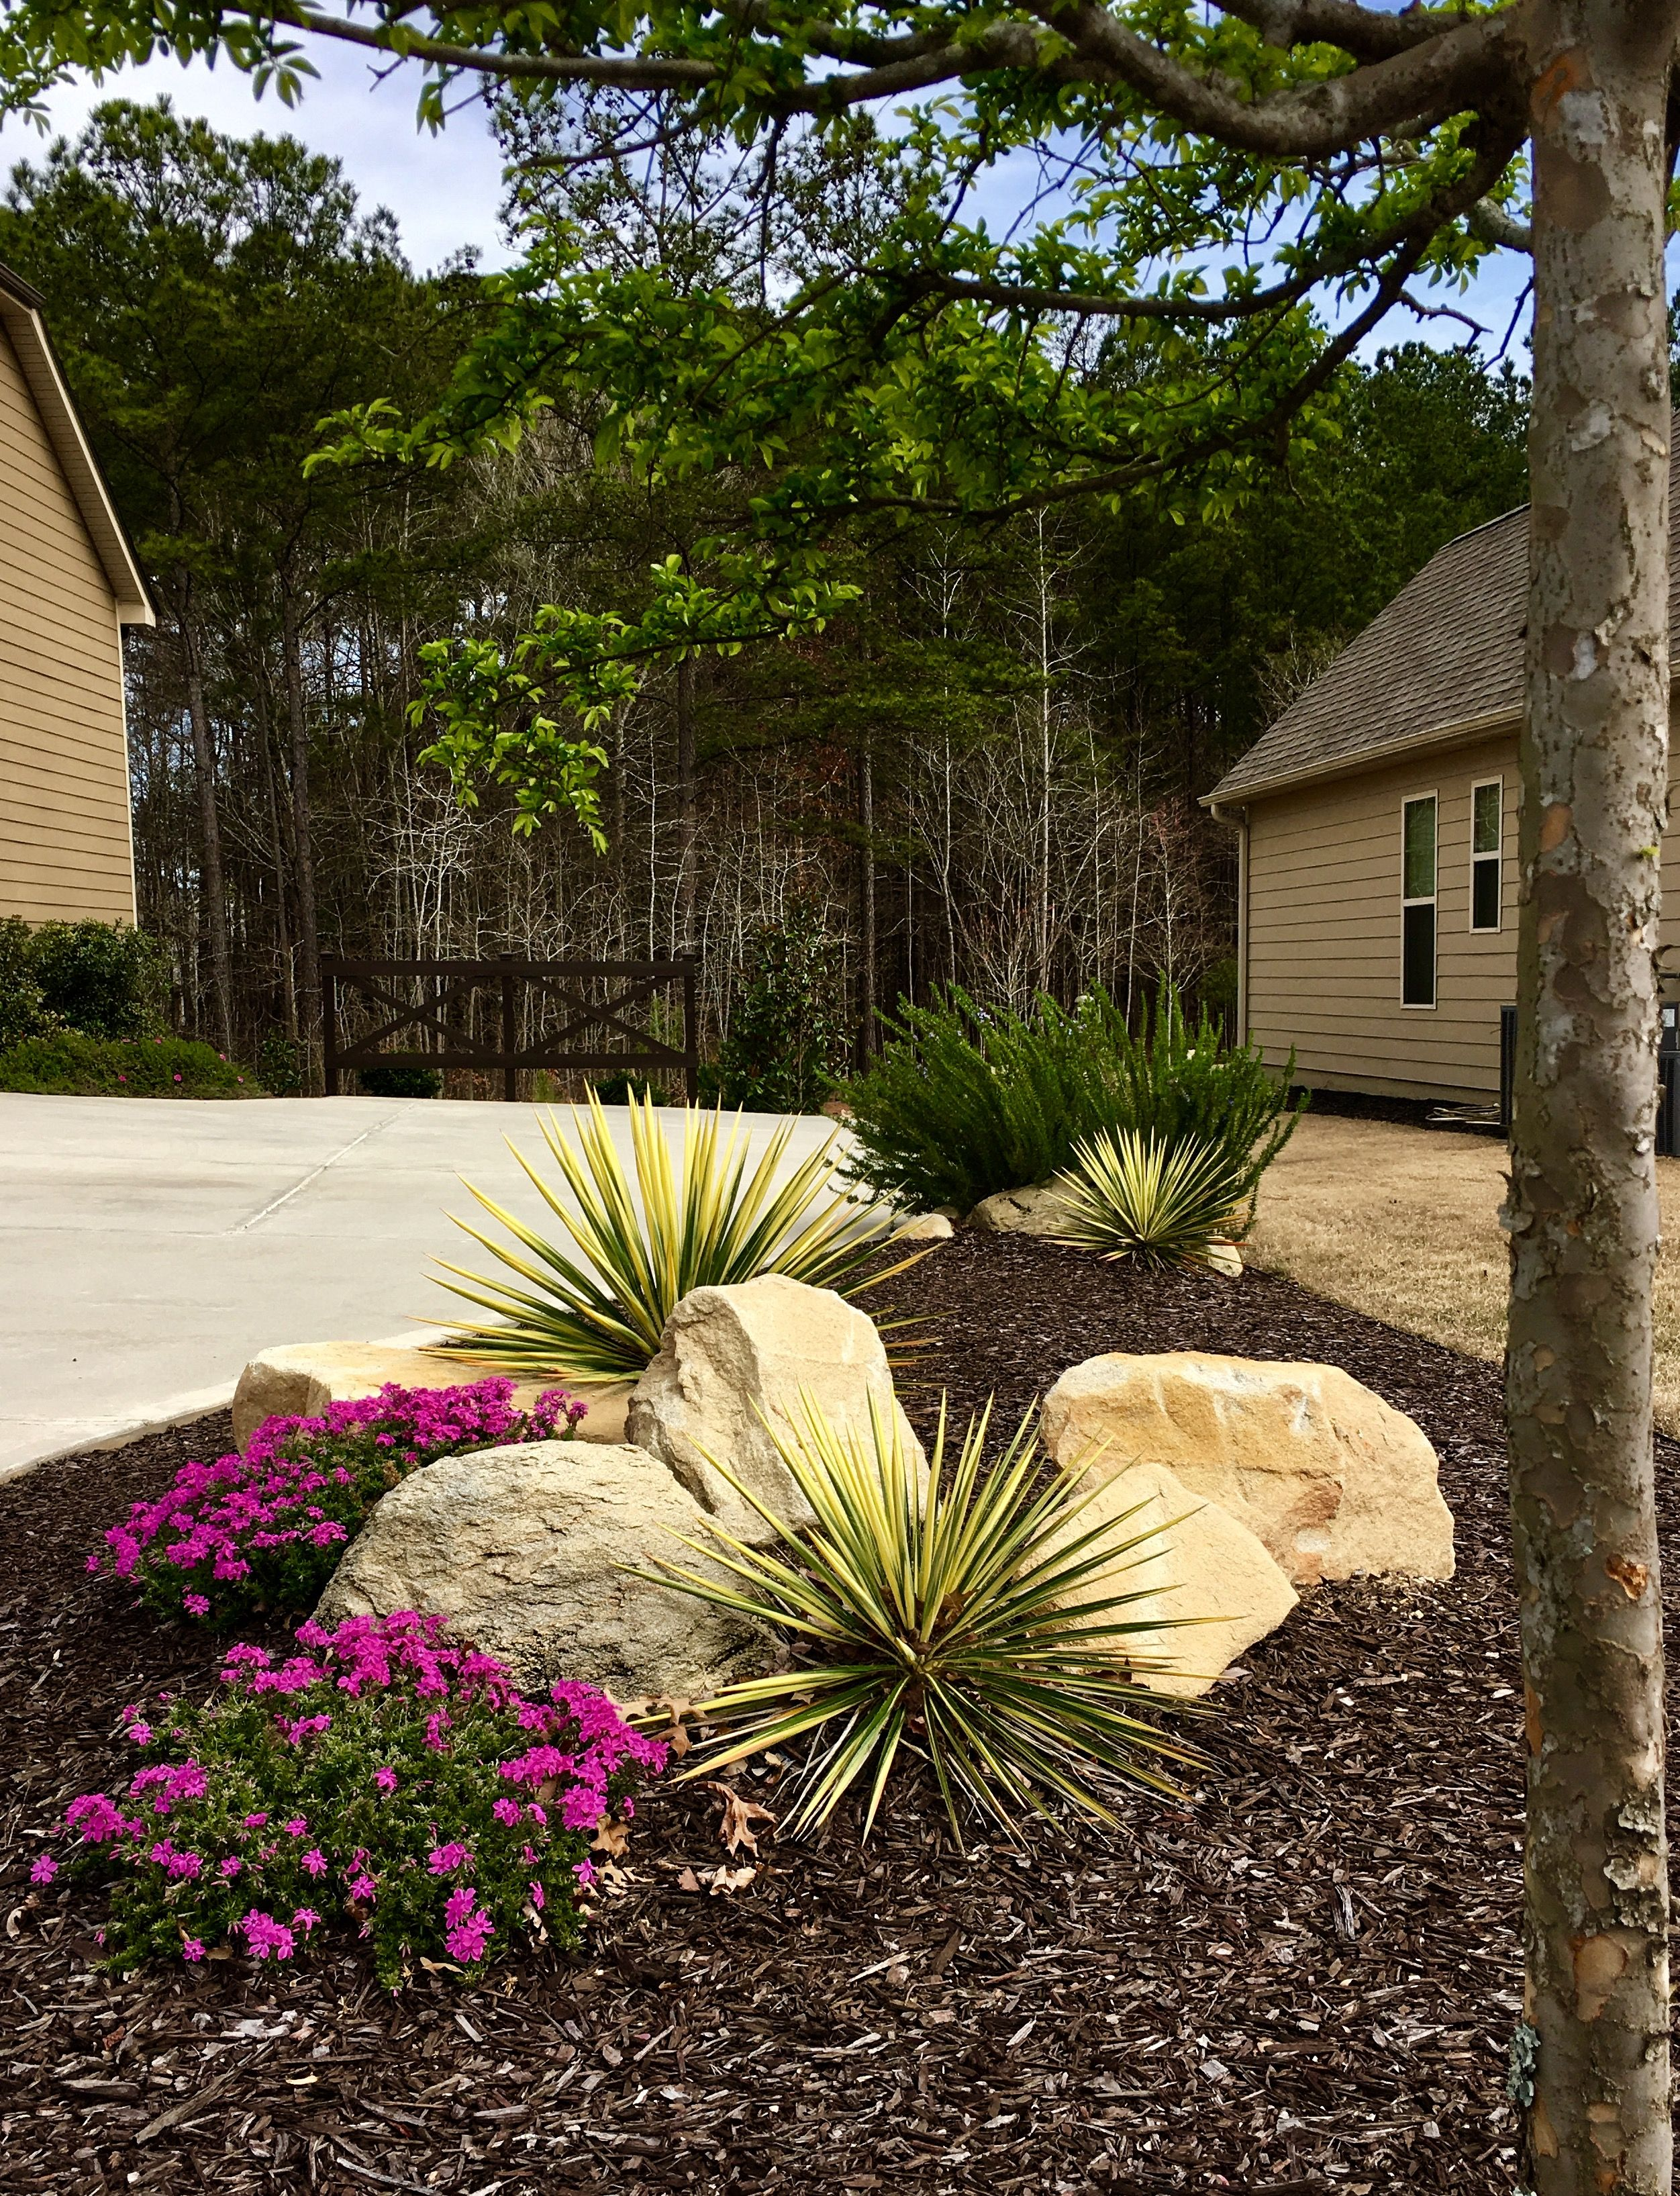 Landscaping with rocks boulders phlox and rosemary